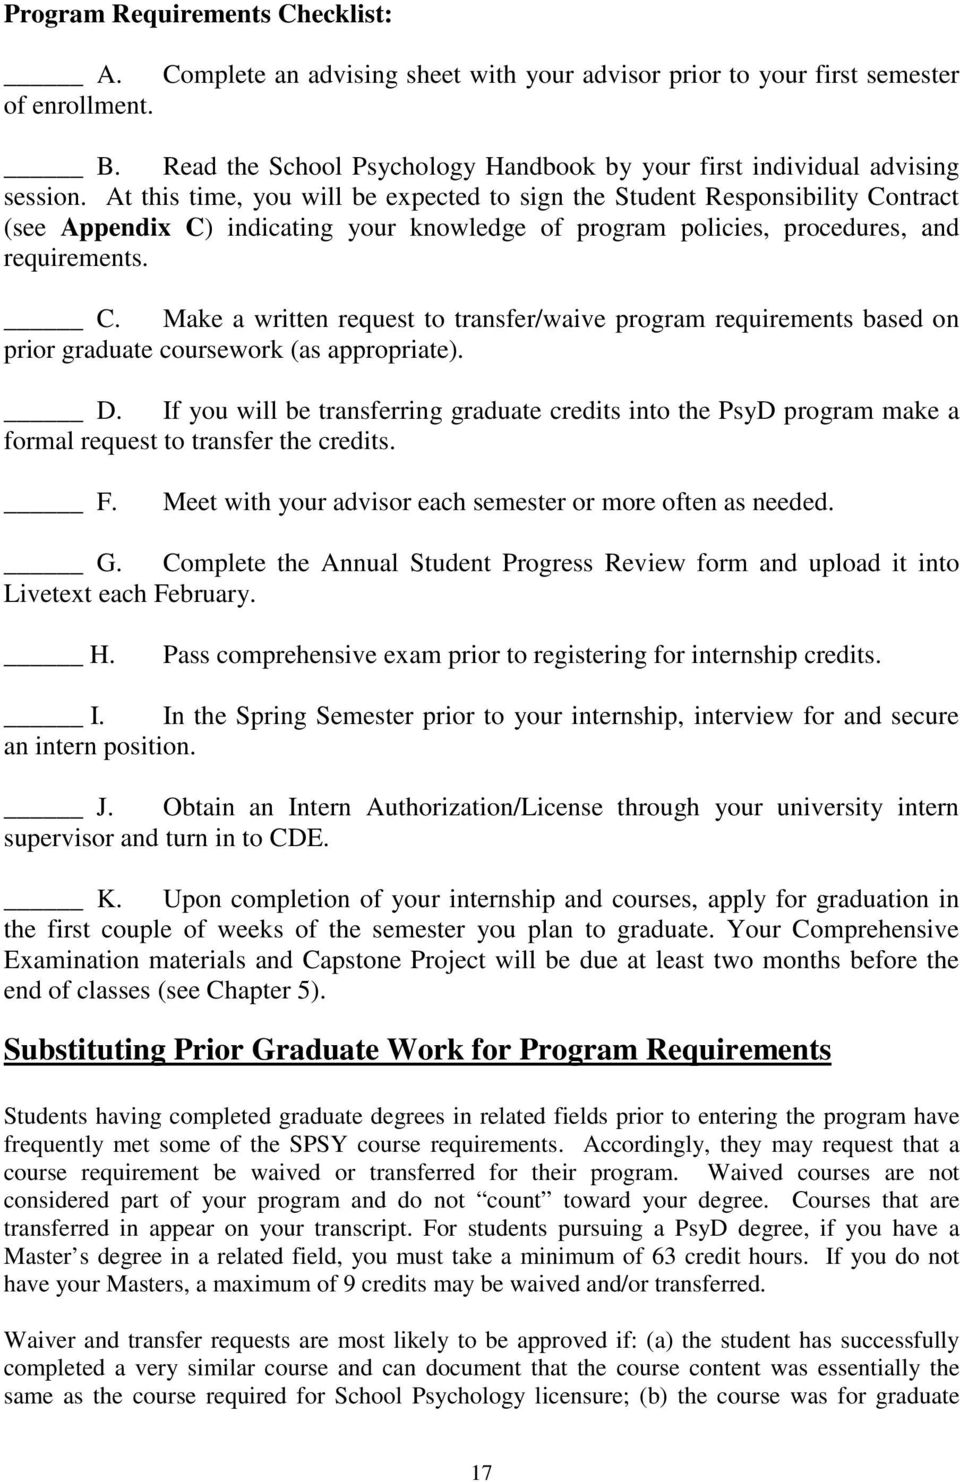 At this time, you will be expected to sign the Student Responsibility Contract (see Appendix C) indicating your knowledge of program policies, procedures, and requirements. C. Make a written request to transfer/waive program requirements based on prior graduate coursework (as appropriate).